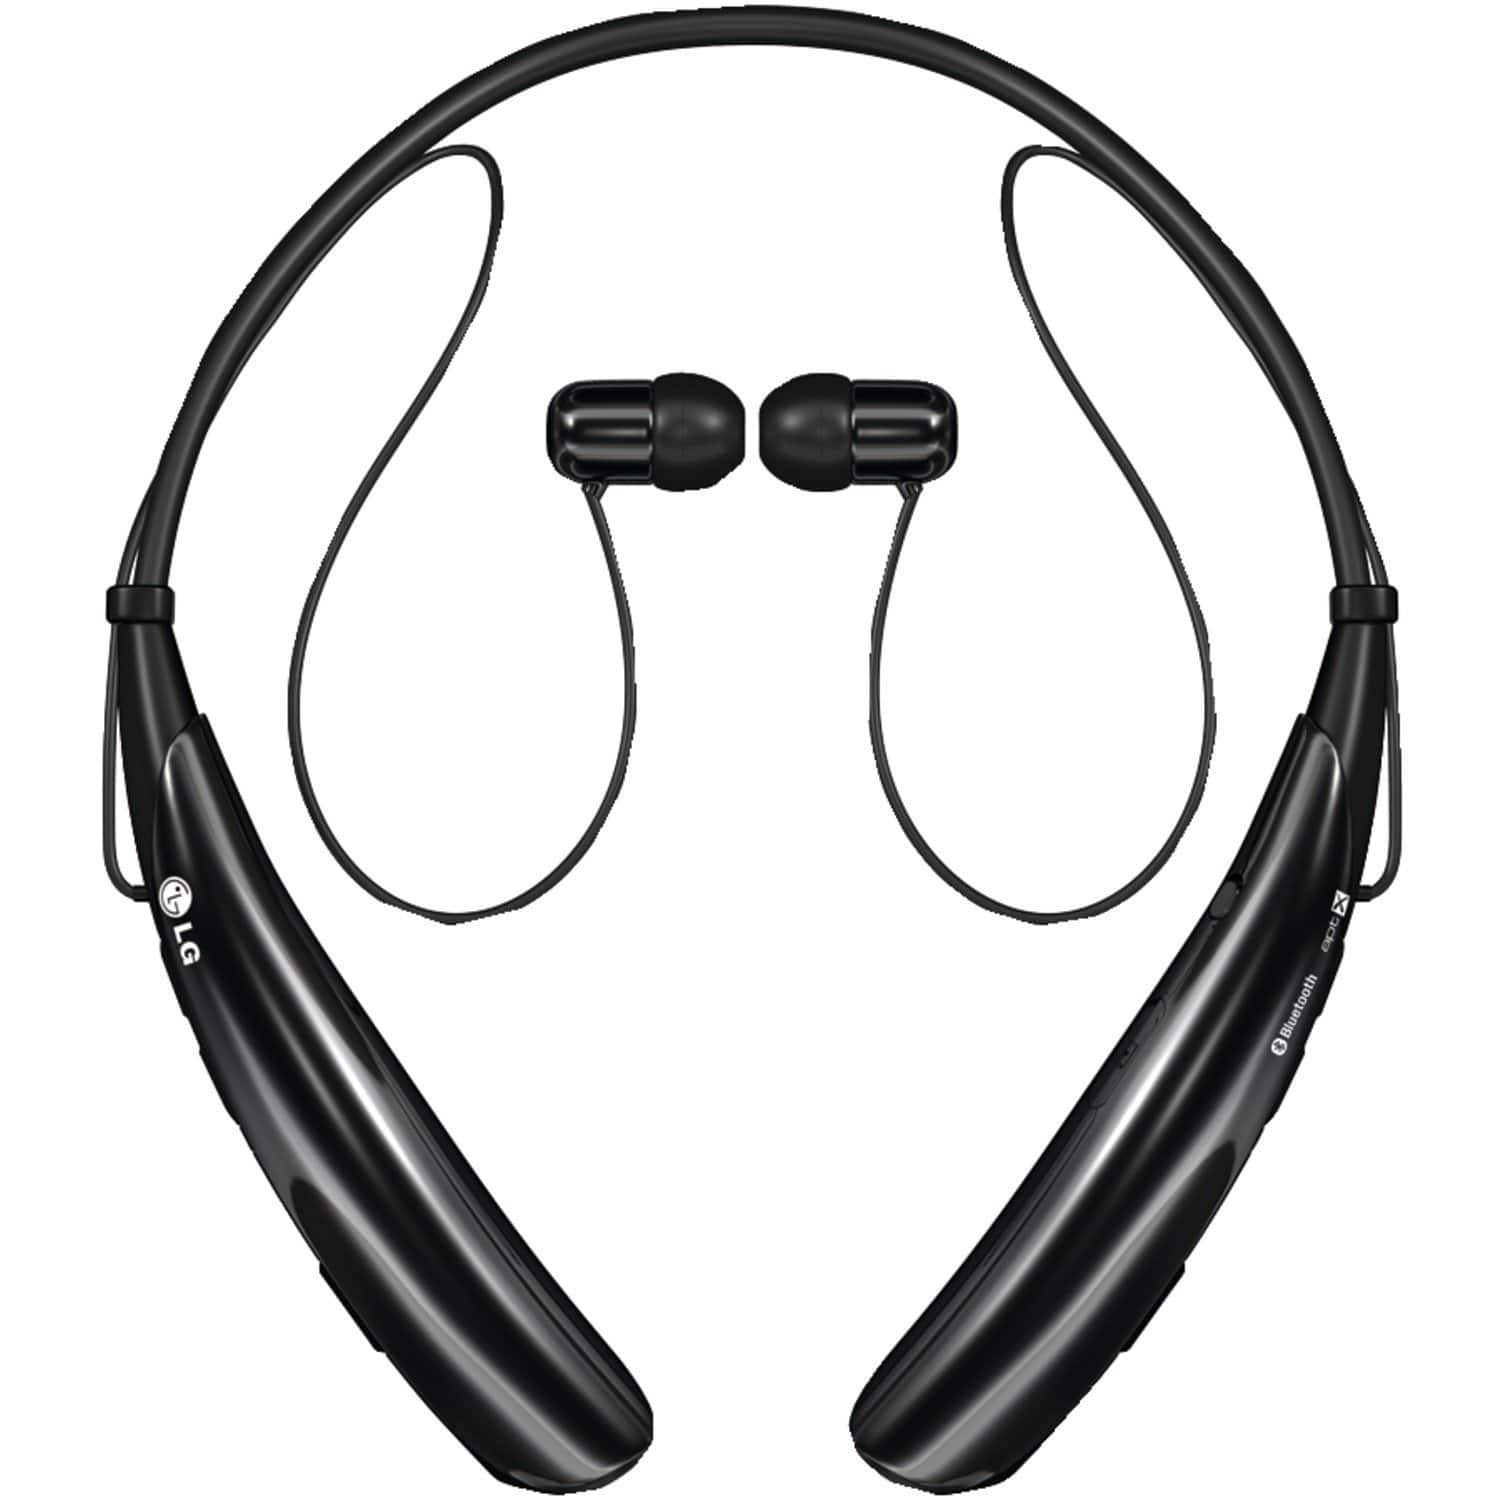 LG Electronics Tone Pro HBS-750 Bluetooth Wireless Stereo Headset 24.81 prime